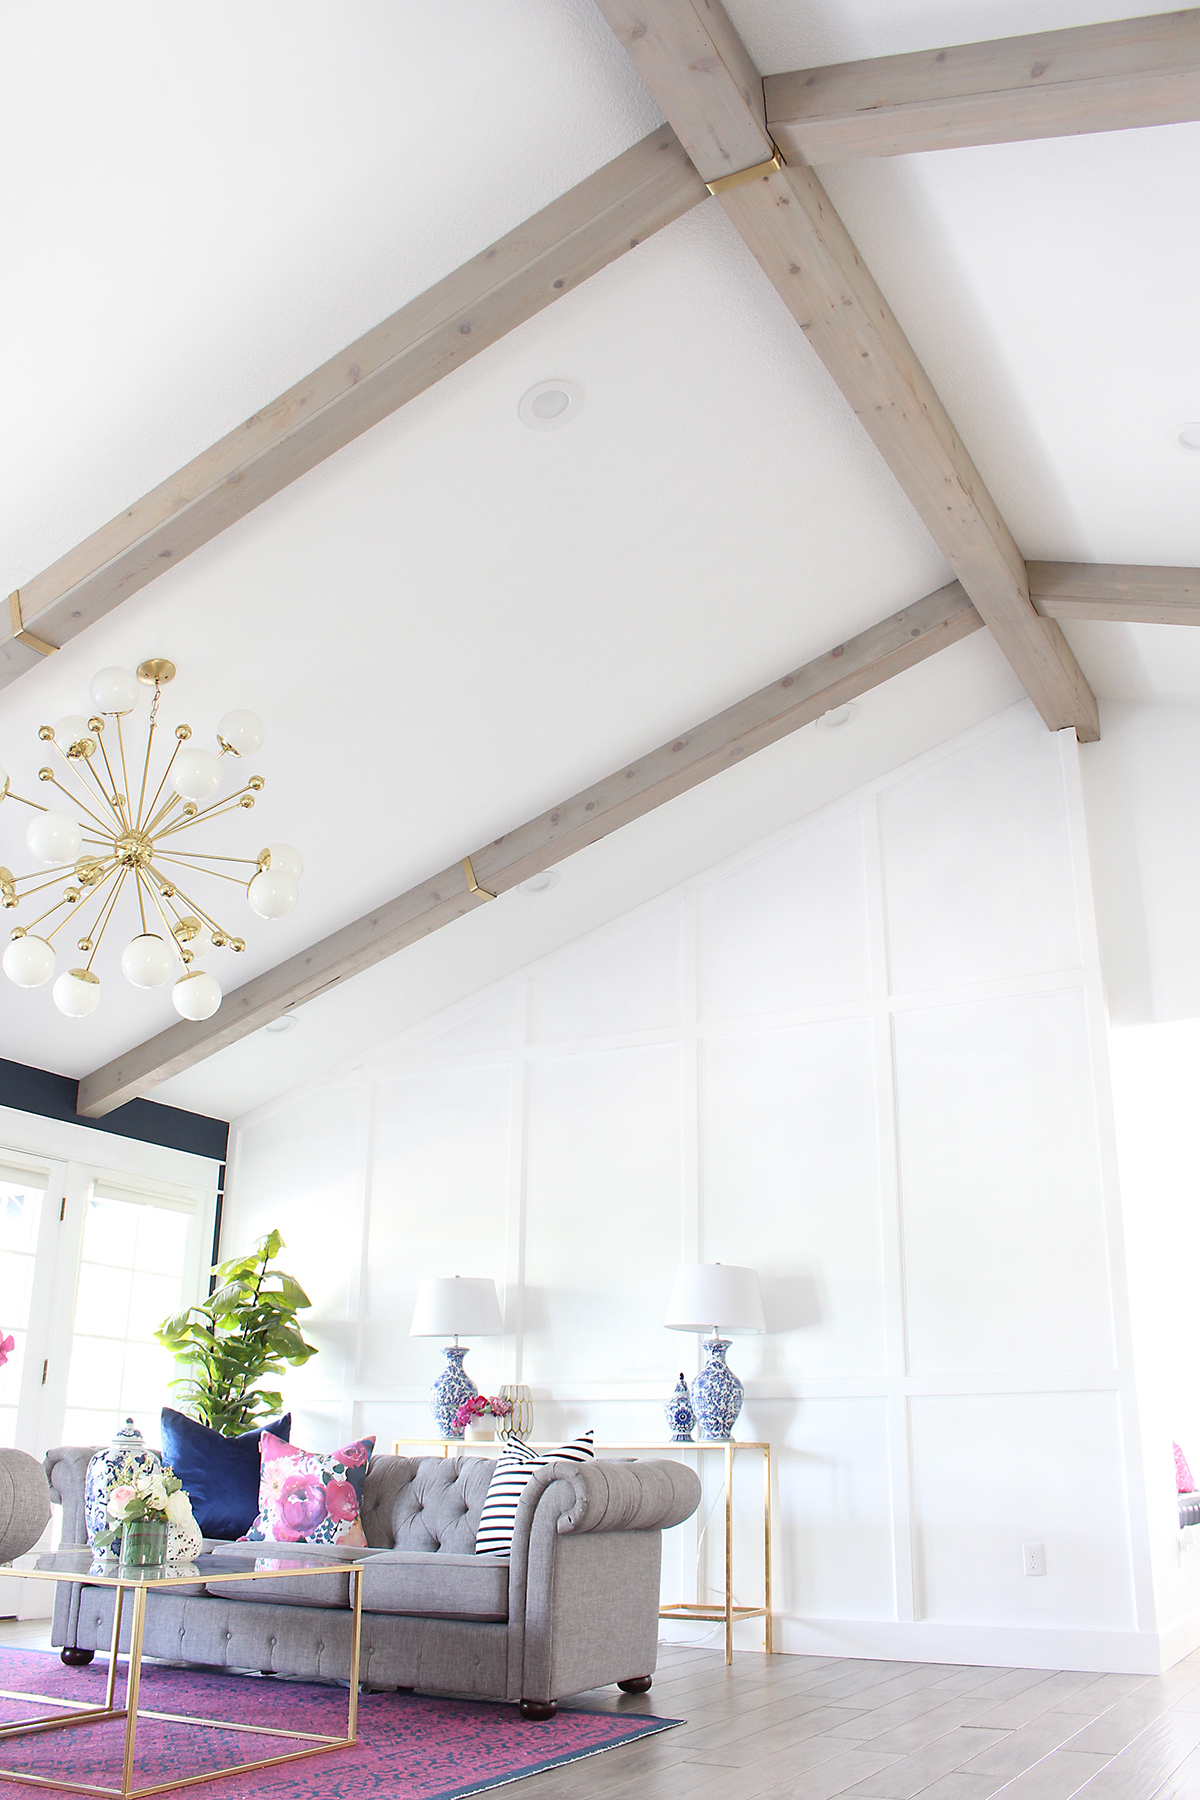 How to make Faux Wood Beams - beautiful!